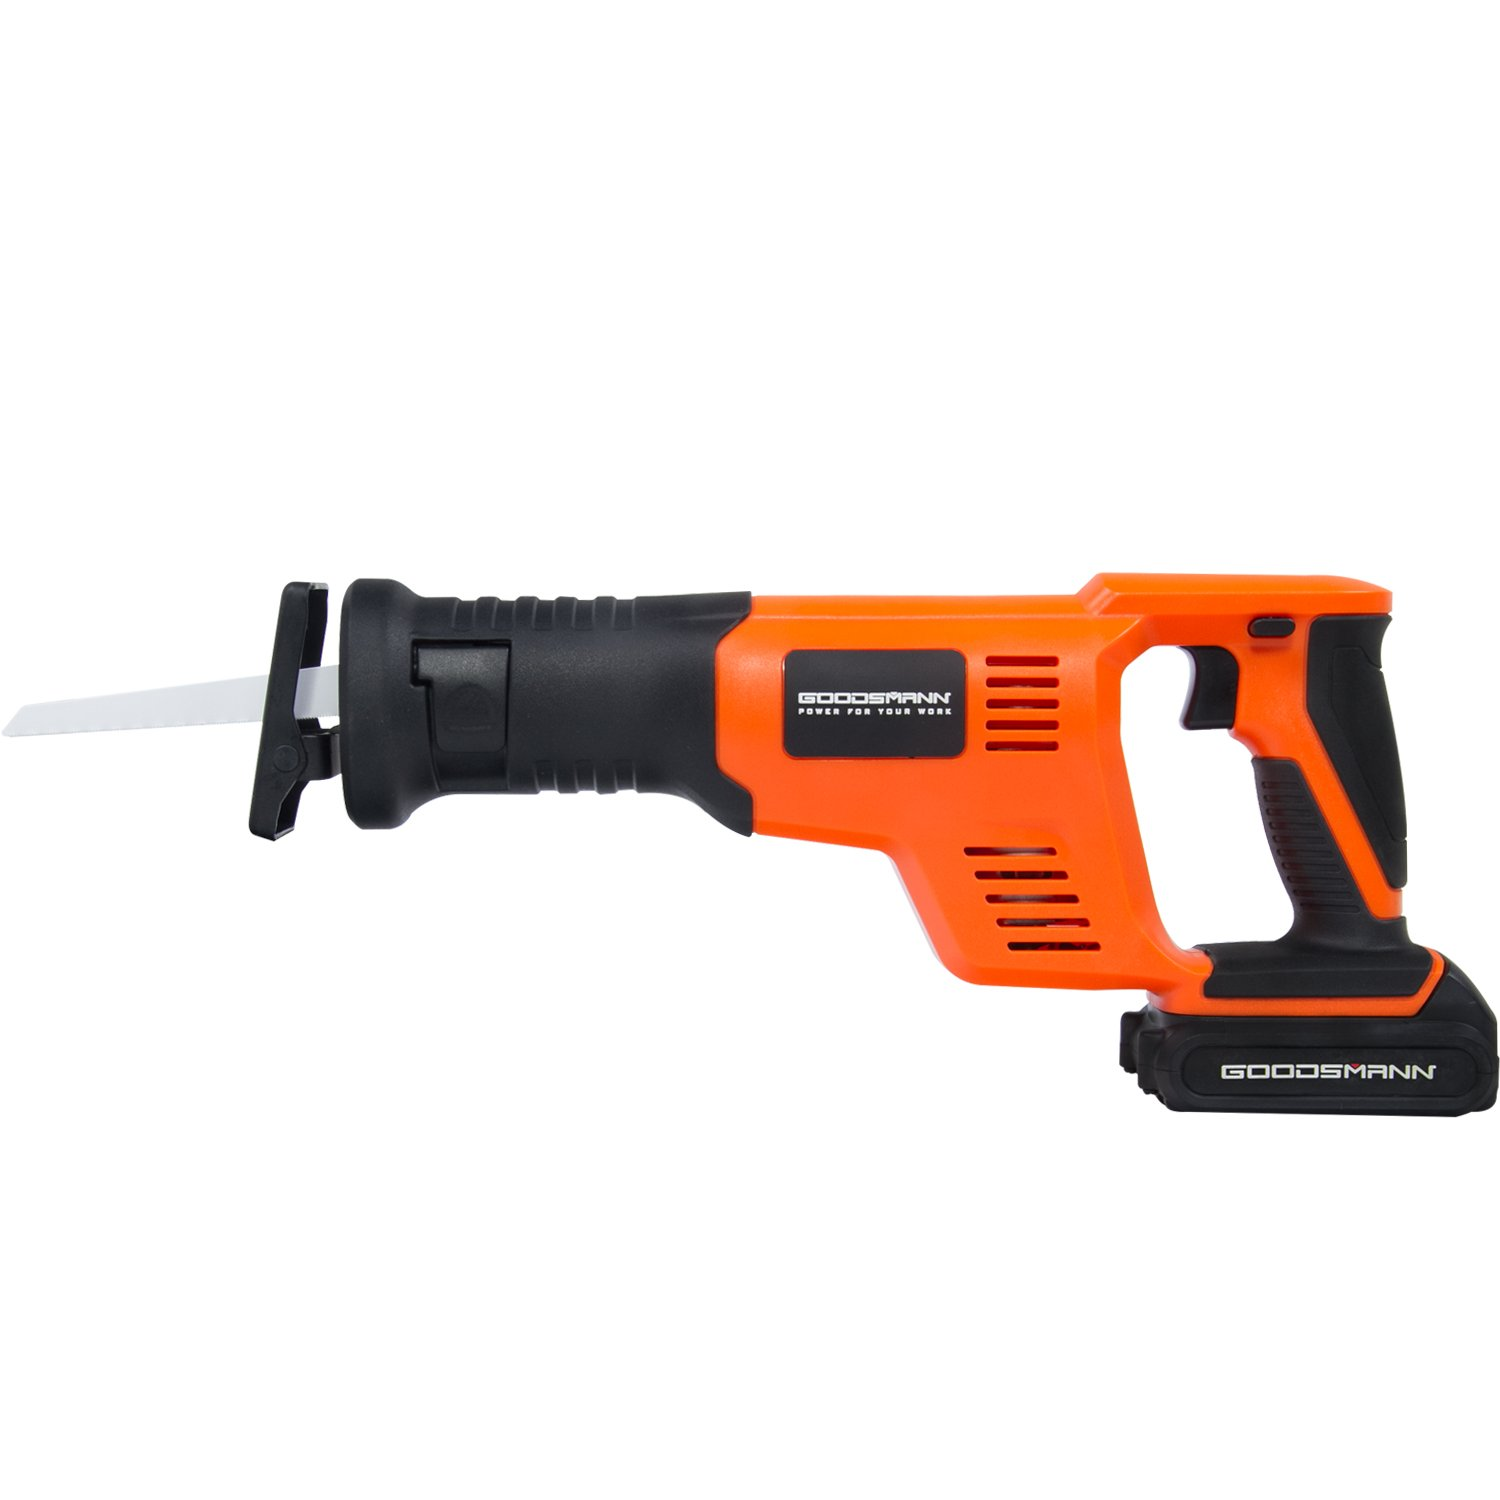 GOODSMANN 18V Li-ion Battery Cordless Compact Reciprocating Saw with 1500 mAh Battery, Variable Speed Reciprocating Saw with 2 Reciprocating Saw Blades(1 Blade Wood and 1 Blade Metal) 9923-1014-01